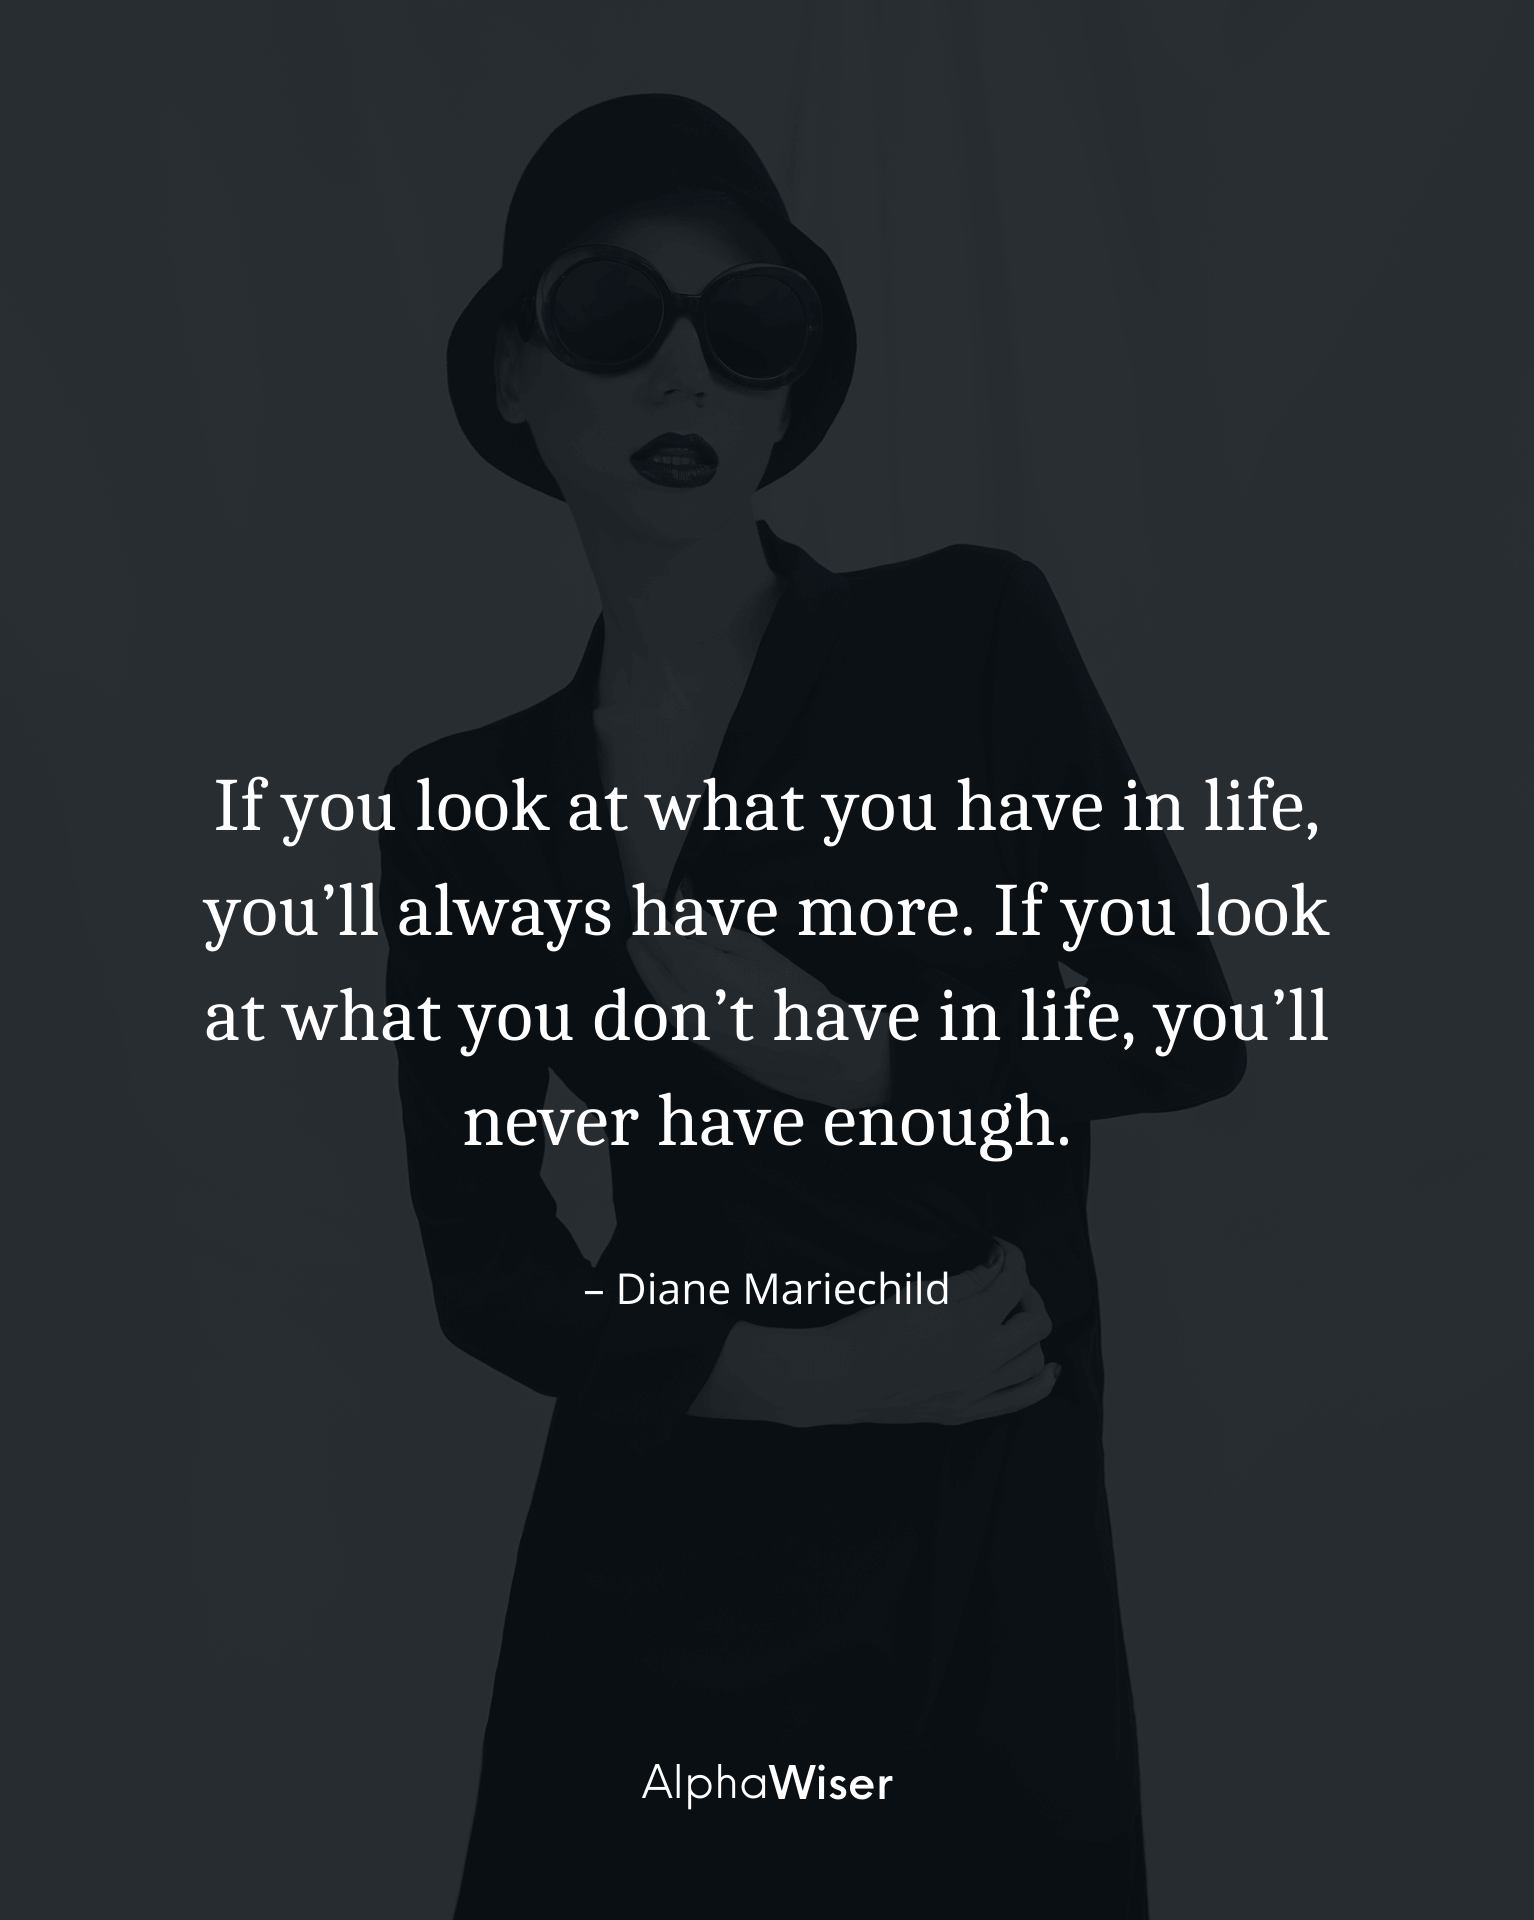 If you look at what you have in life, you'll always have more. If you look at what you don't have in life, you'll never have enough.